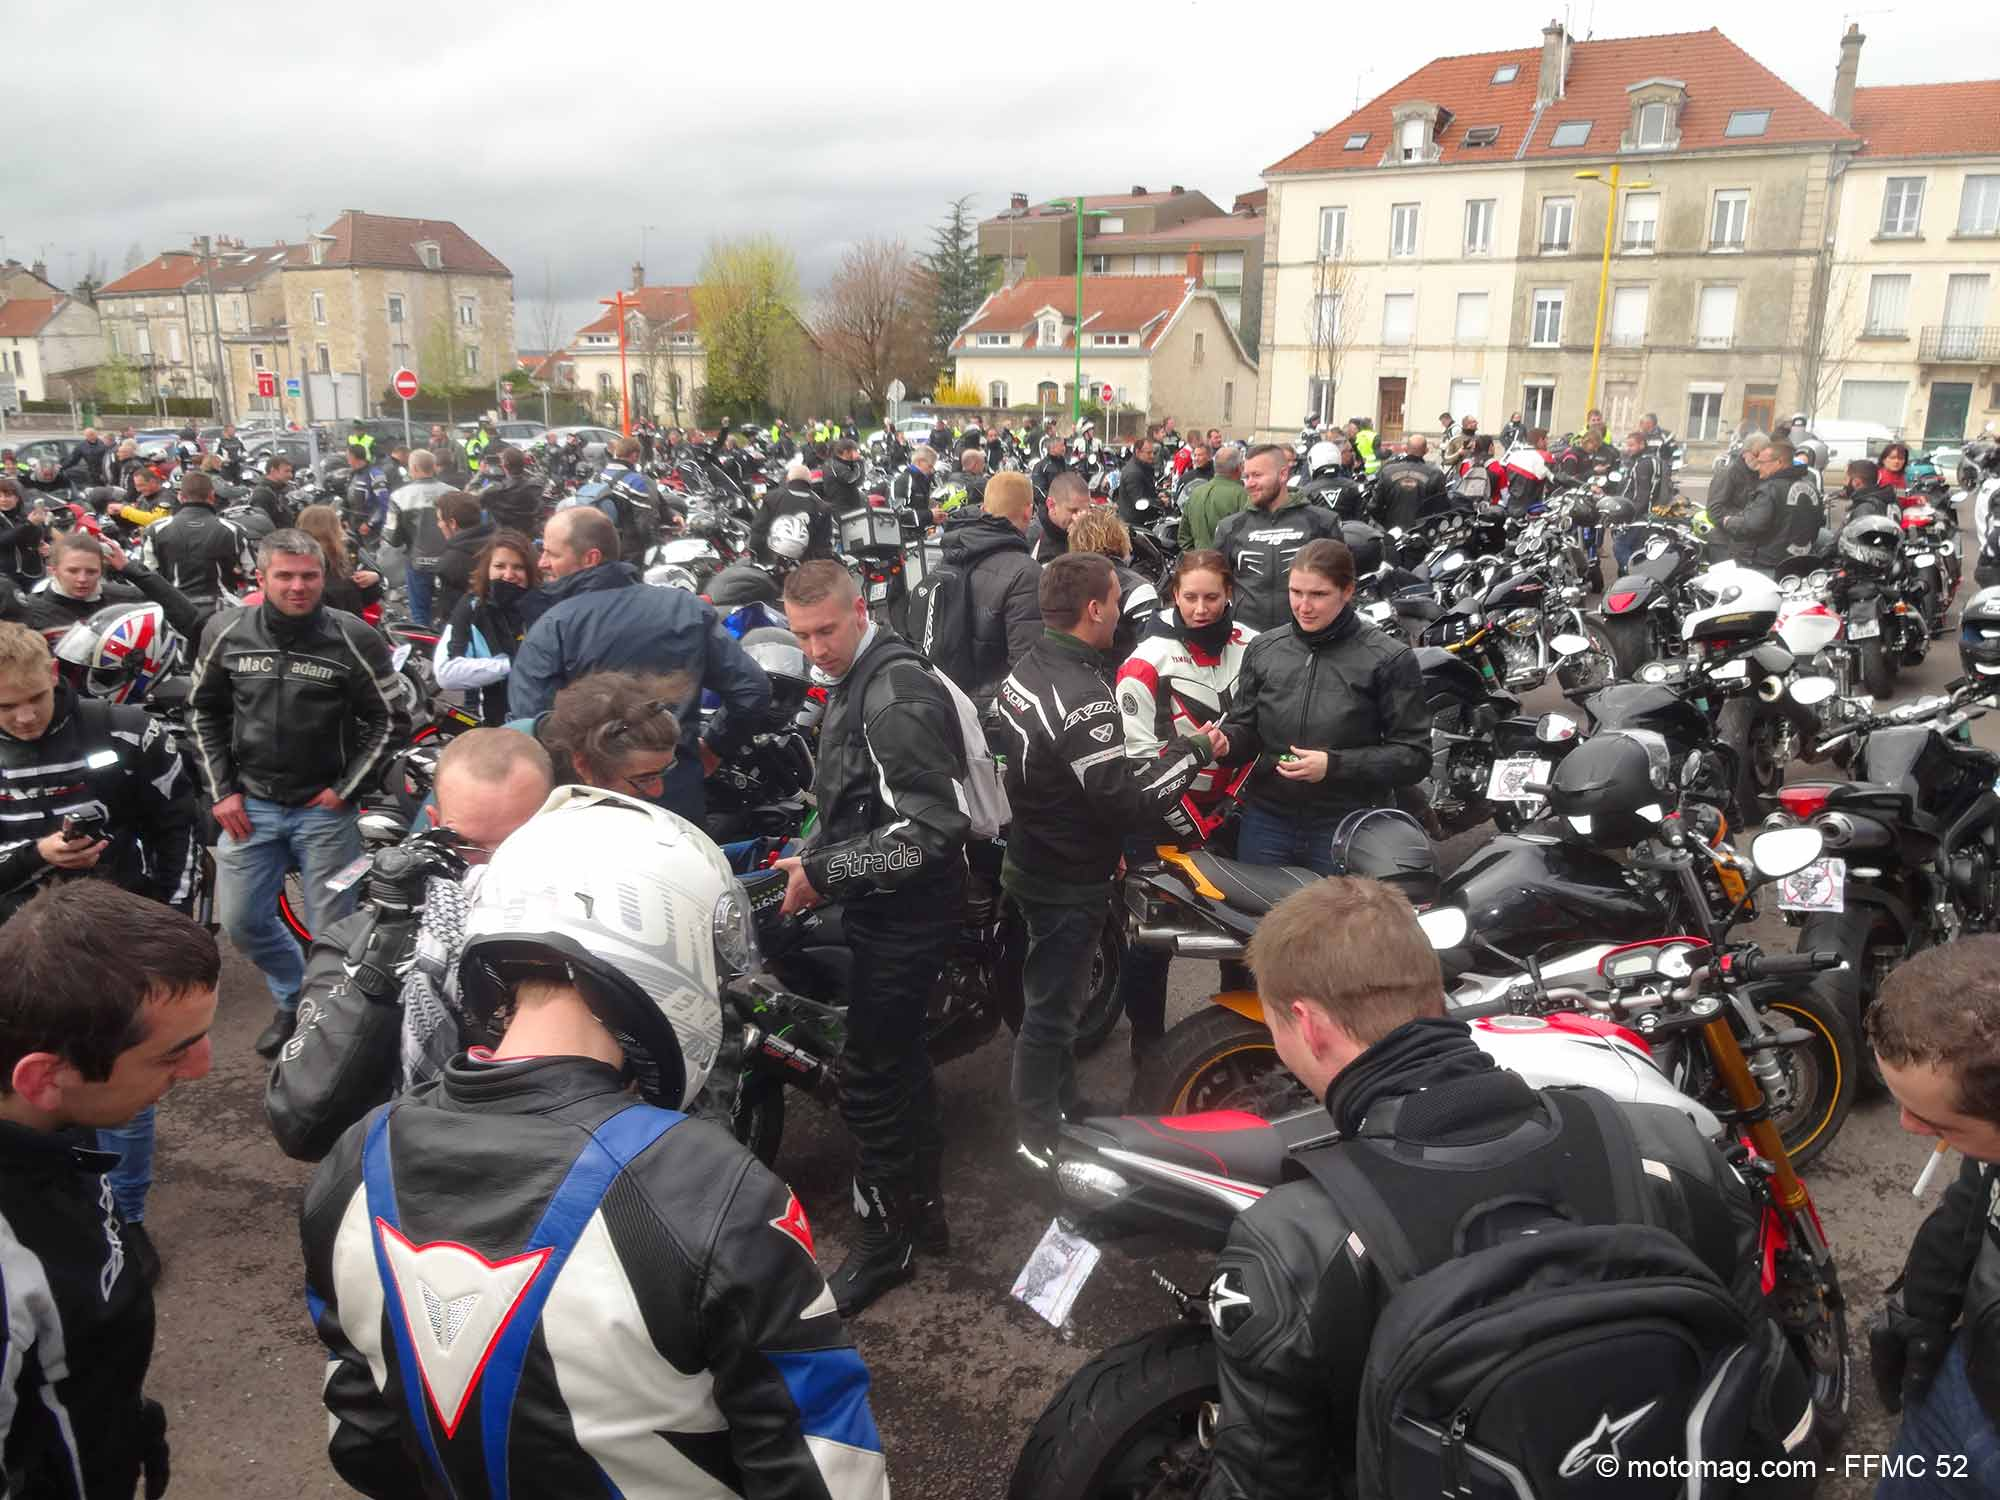 manif ffmc 52 400 motards manifestent chaumont. Black Bedroom Furniture Sets. Home Design Ideas